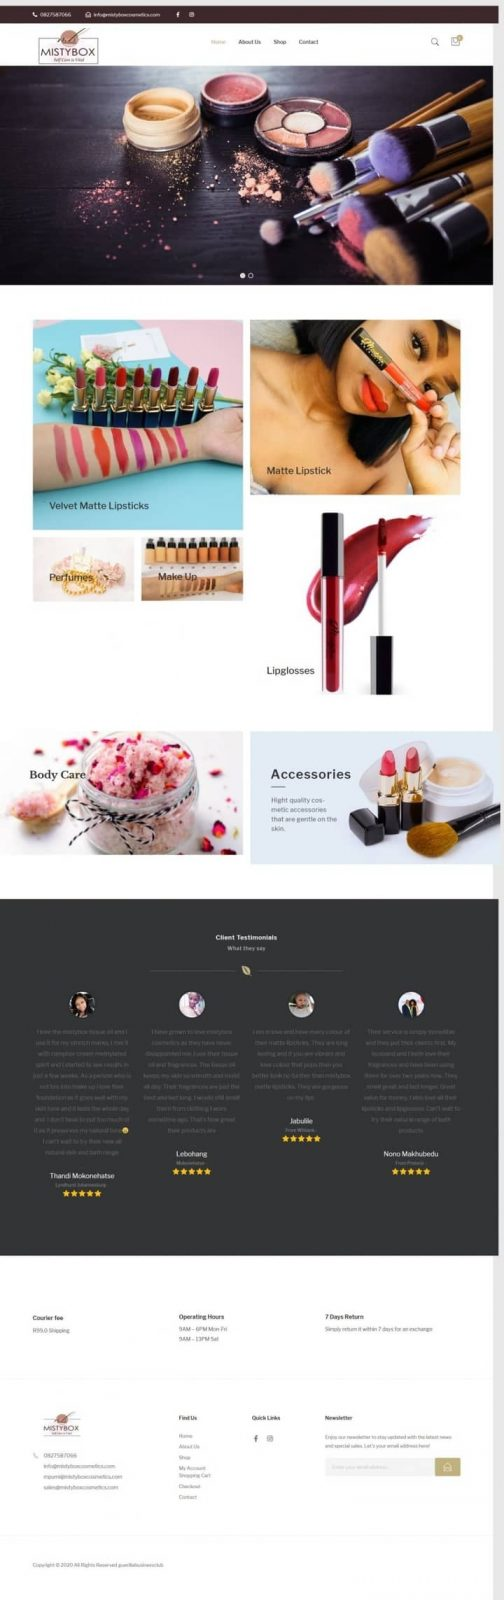 Mistybox Cosmetics website screenshot for a portfolio of Ecommerce/psd to html category